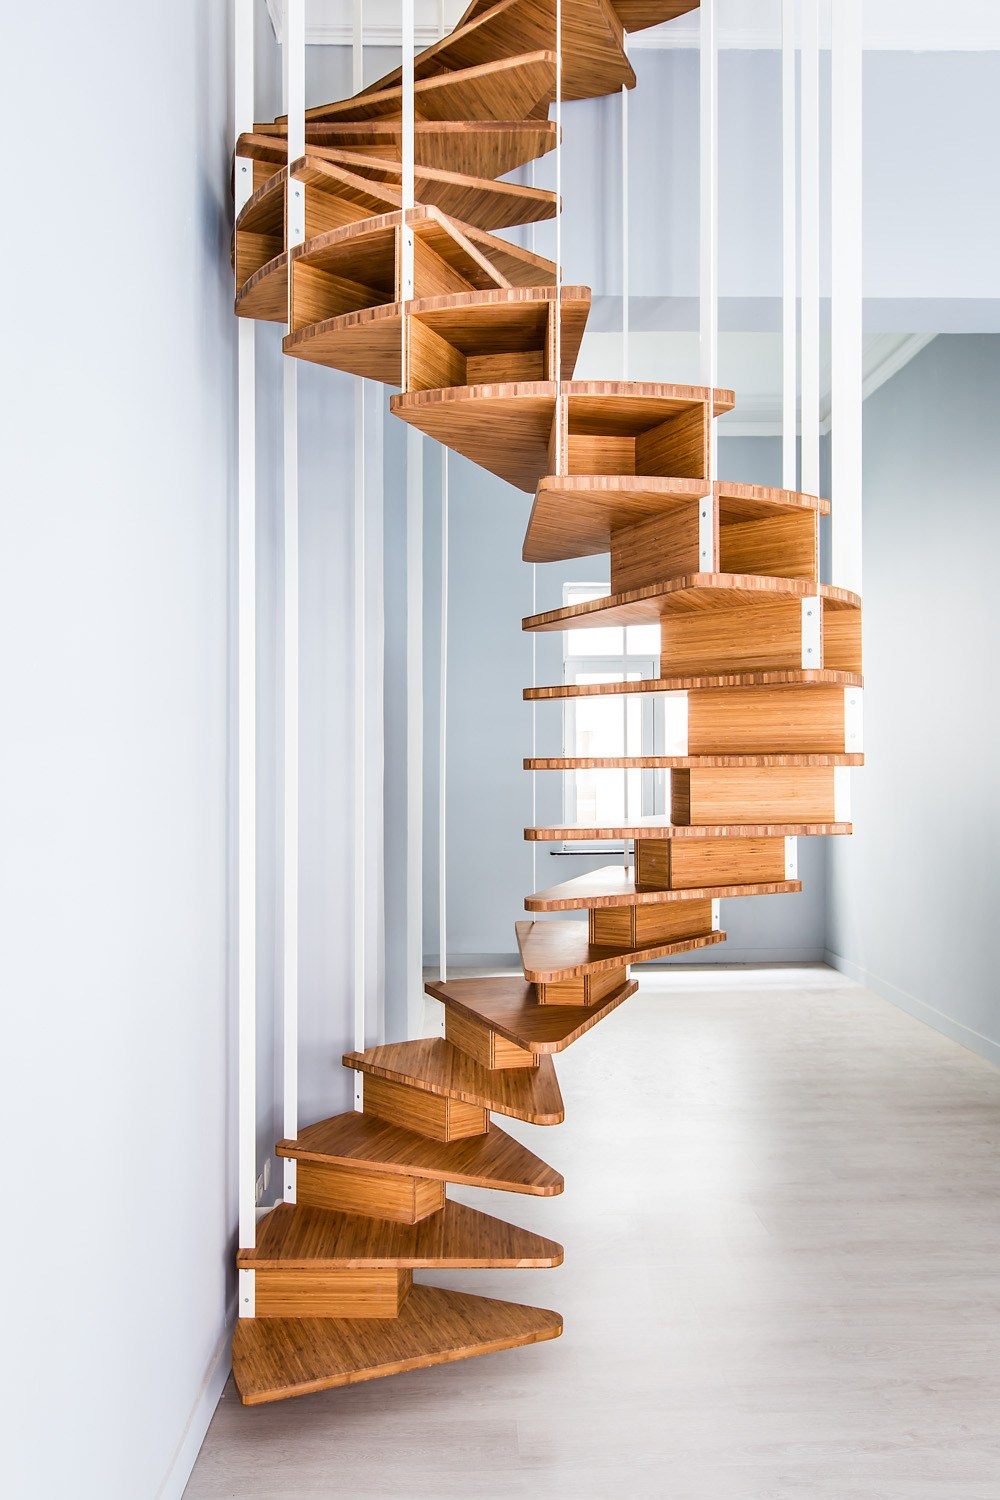 How to build a wooden spiral staircase my staircase gallery for Spiral staircase plan